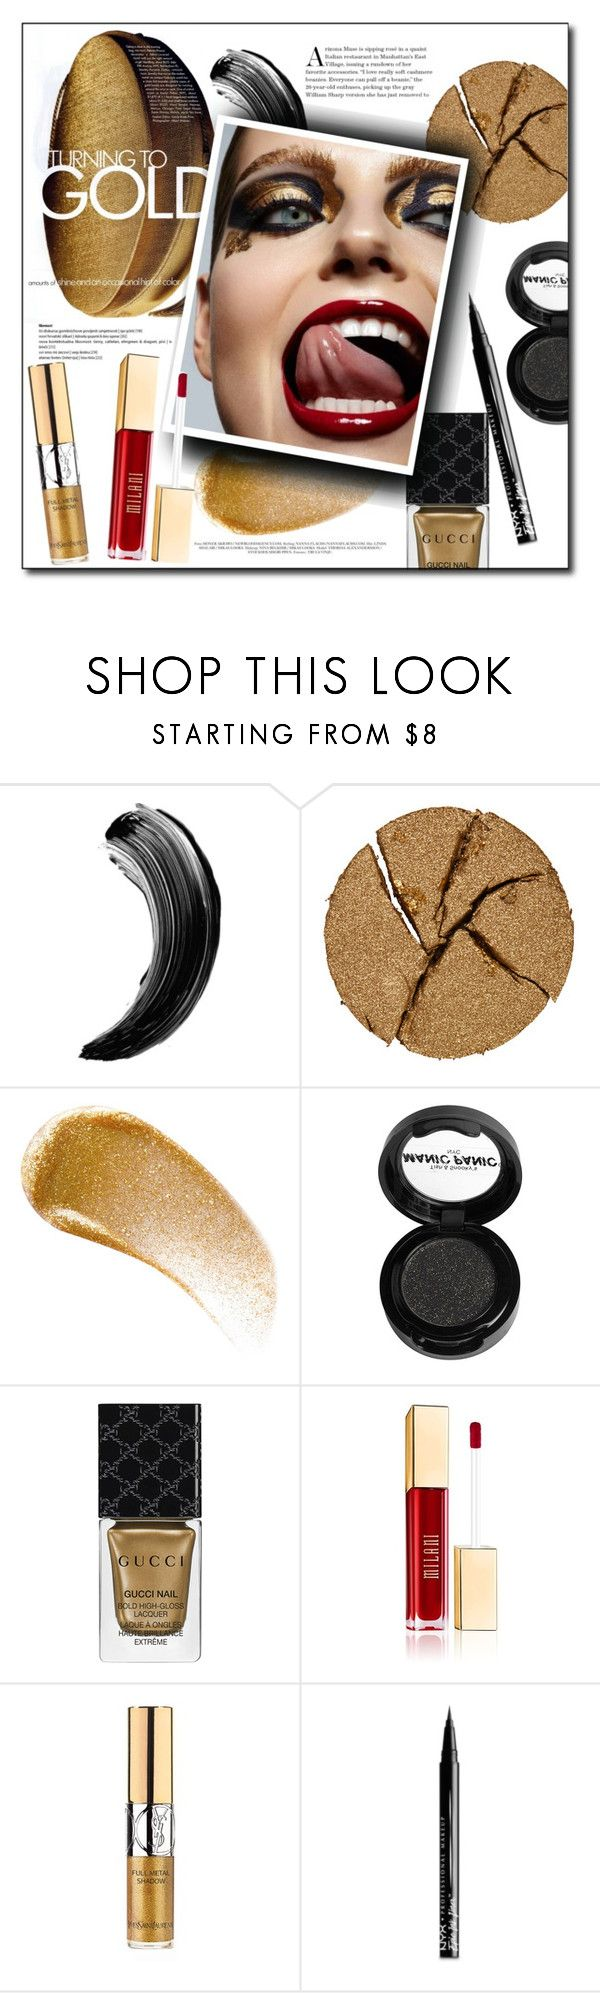 """Gold Beauty"" by fashion-film-fun ❤ liked on Polyvore featuring beauty, Pat McGrath, BBrowBar, Manic Panic NYC, Gucci, Yves Saint Laurent, NYX, Beauty and GoldBeauty"